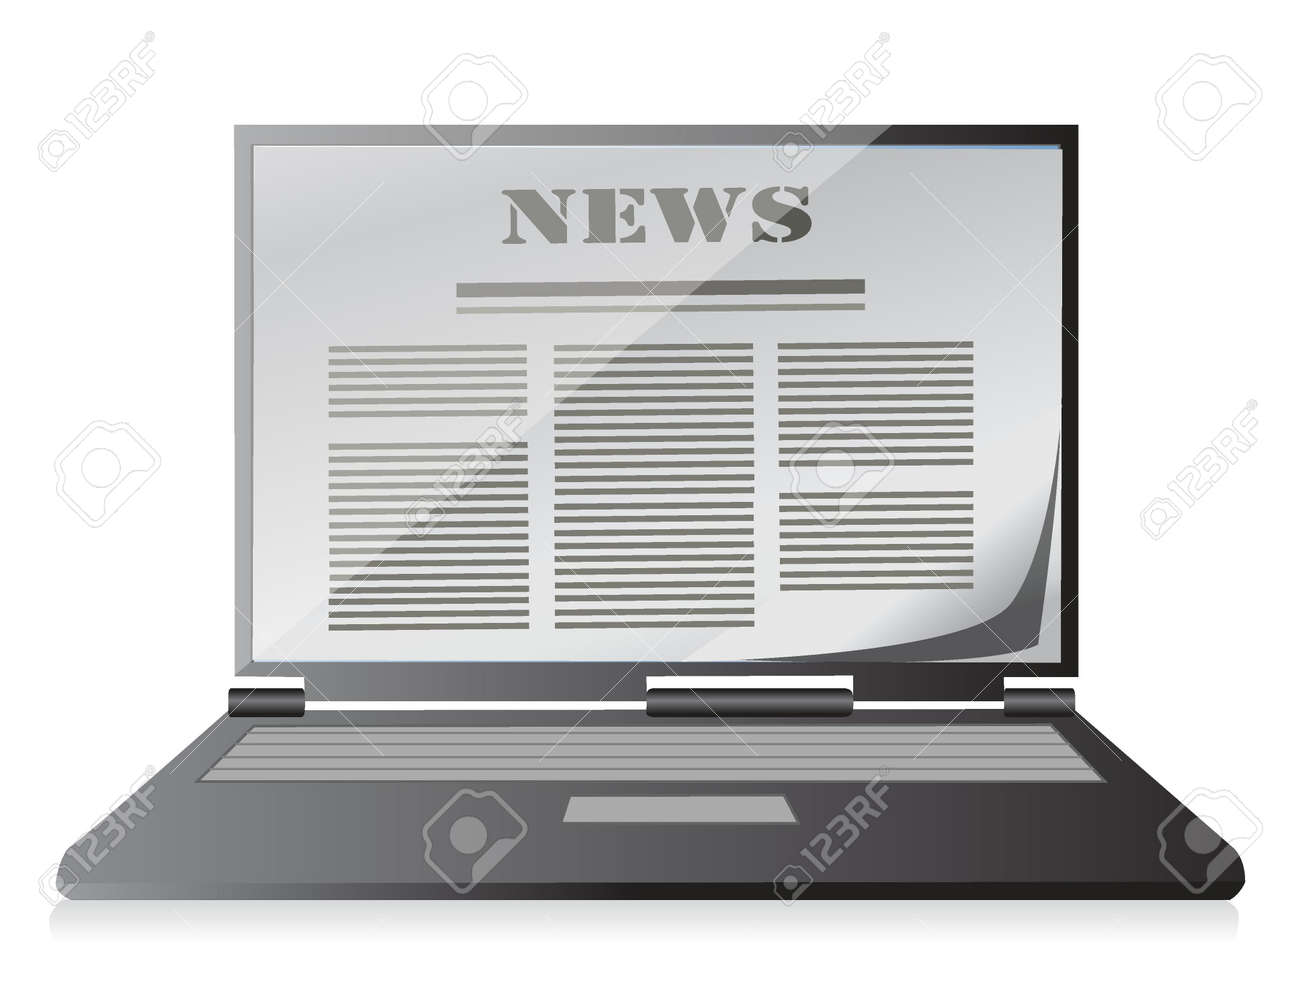 news instead of display on the notebook, laptop. Illustration Stock Vector - 18158678